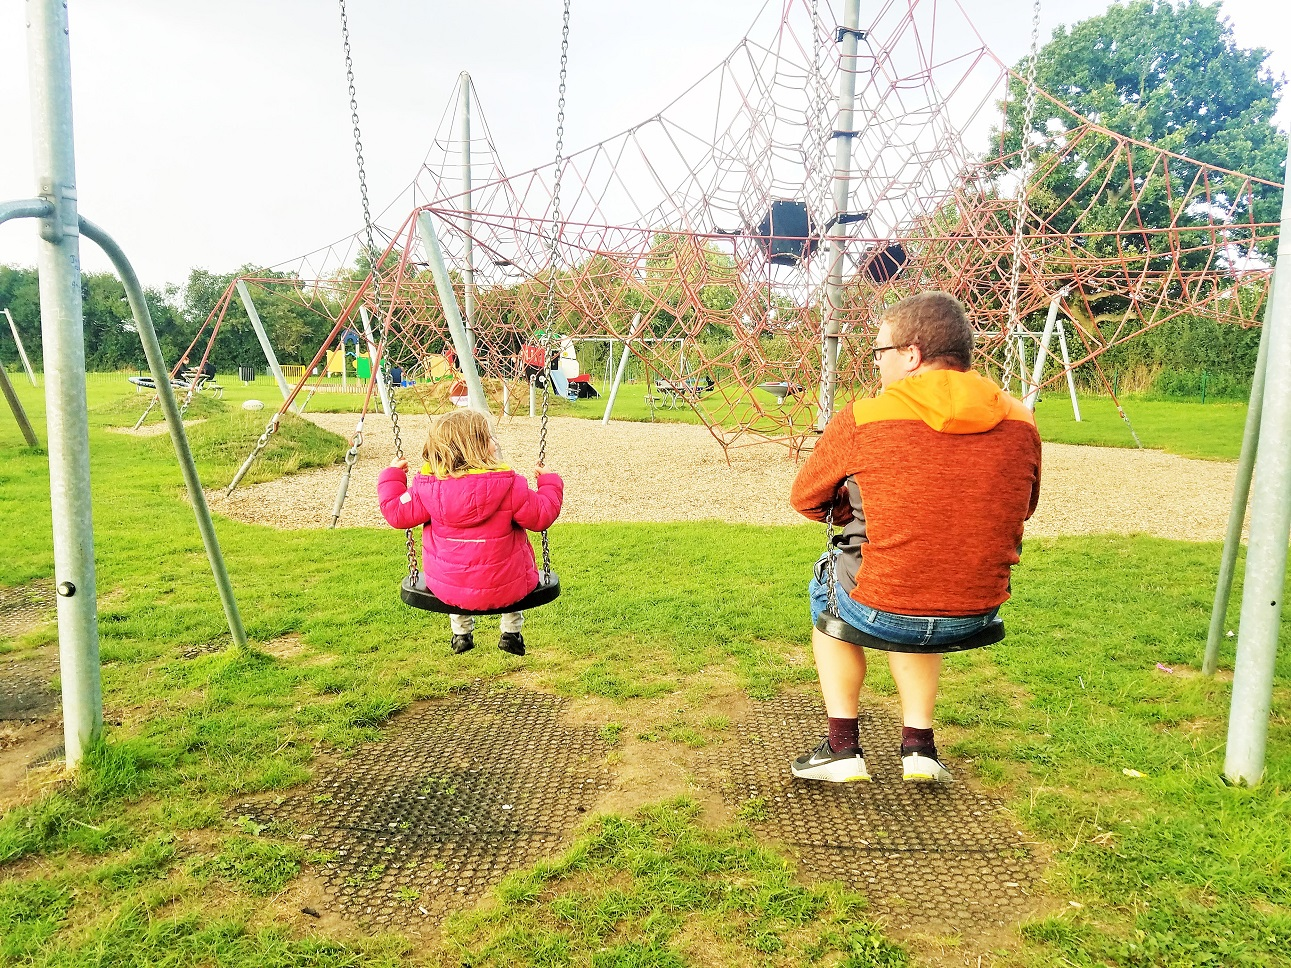 What to do if you've messed up parenting and yelled - child talking to dad on the swings